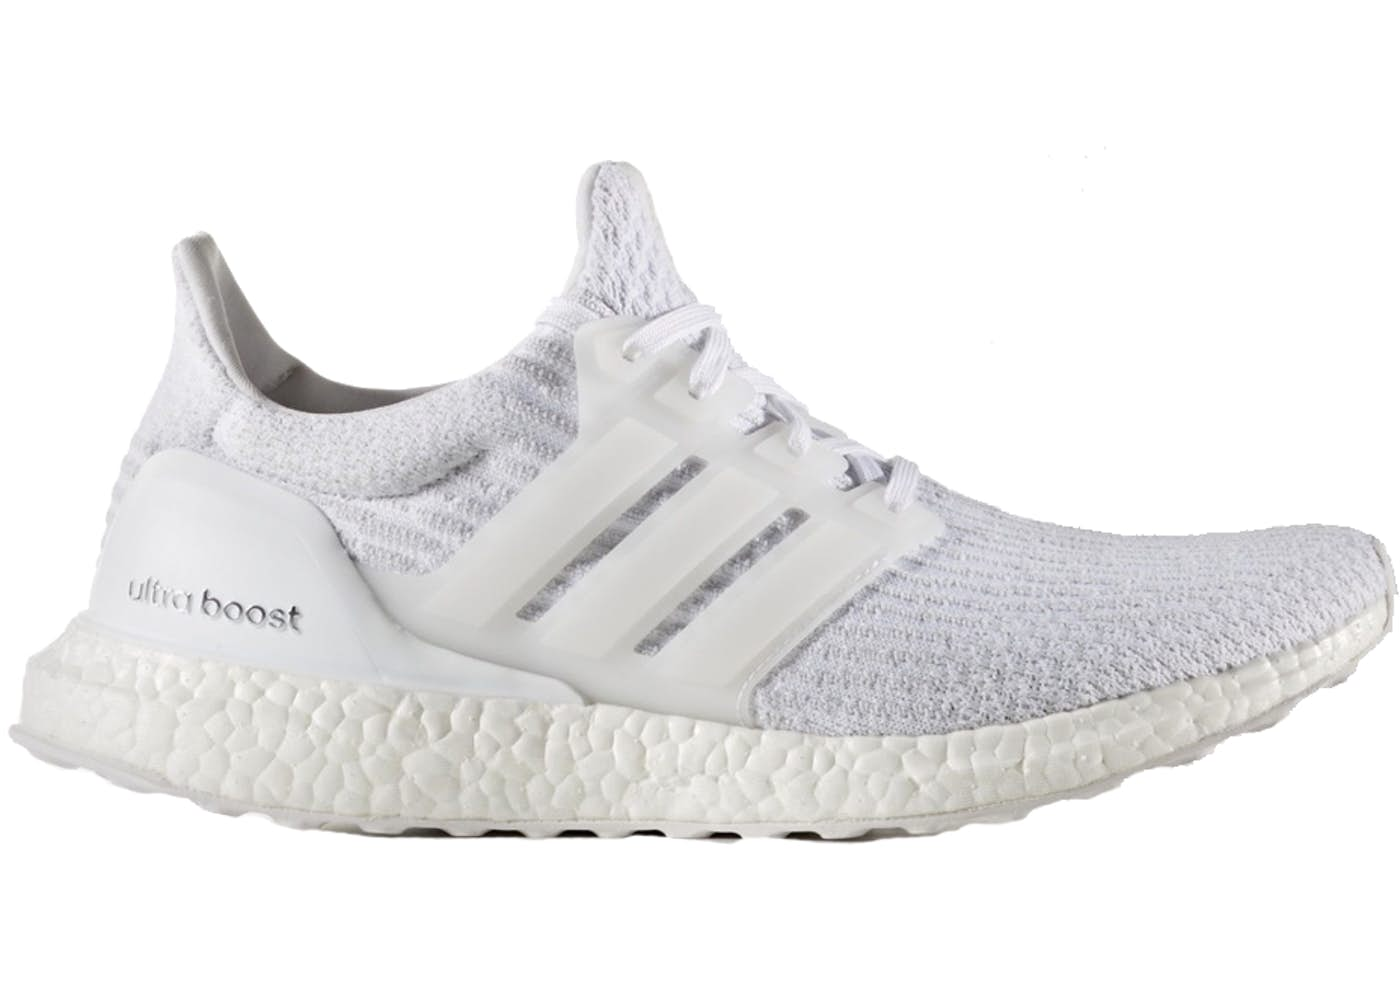 Boosts Shoes For Sale